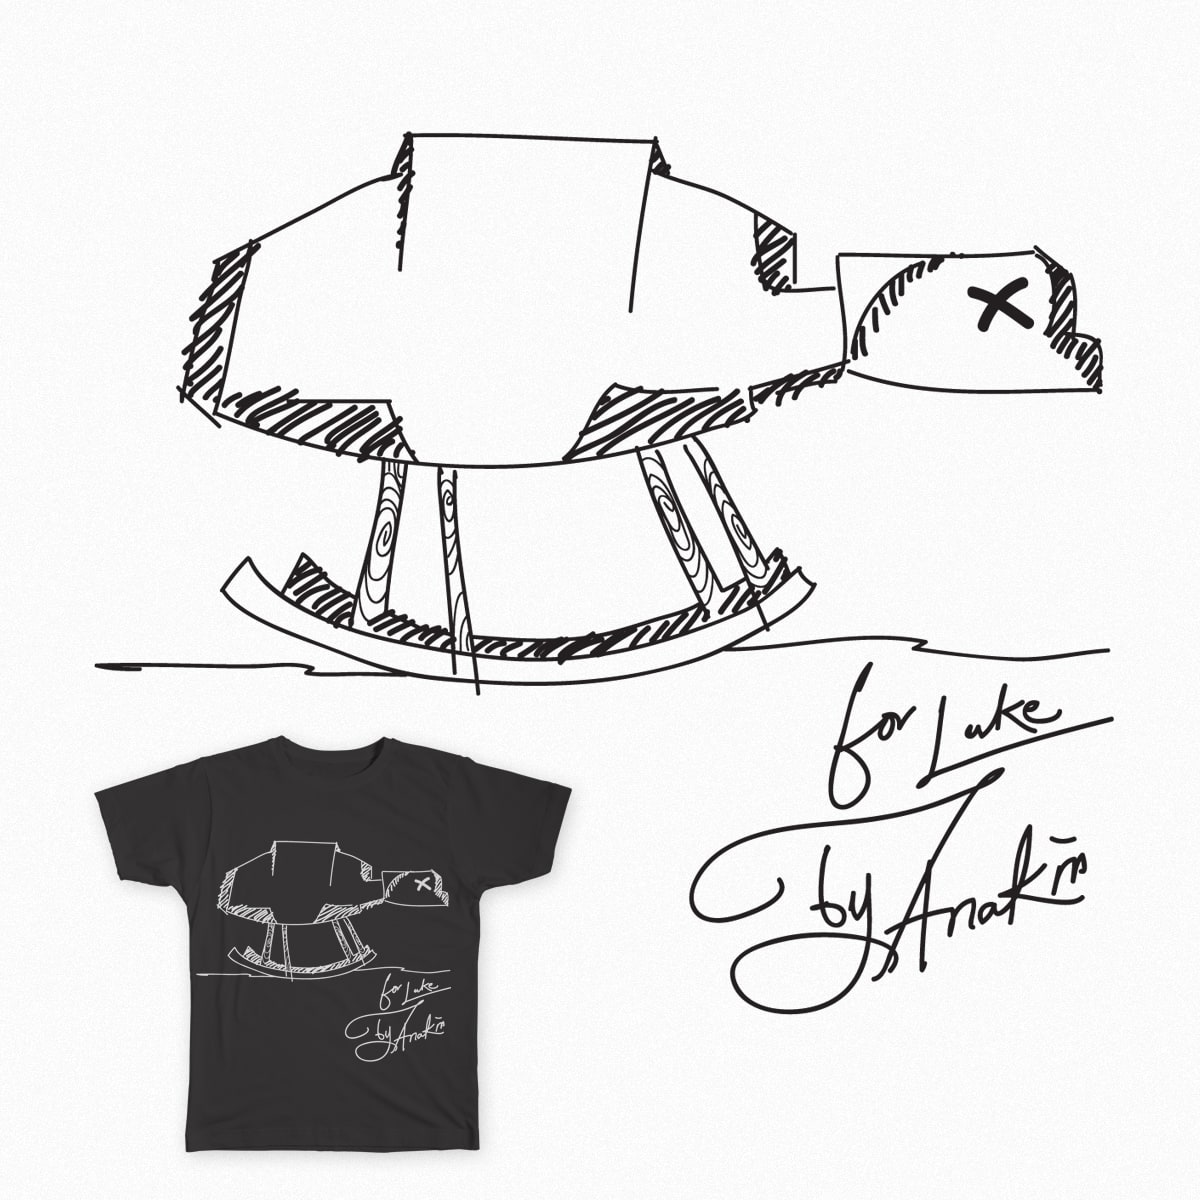 Rocking AT-AT Walker by Sulio on Threadless